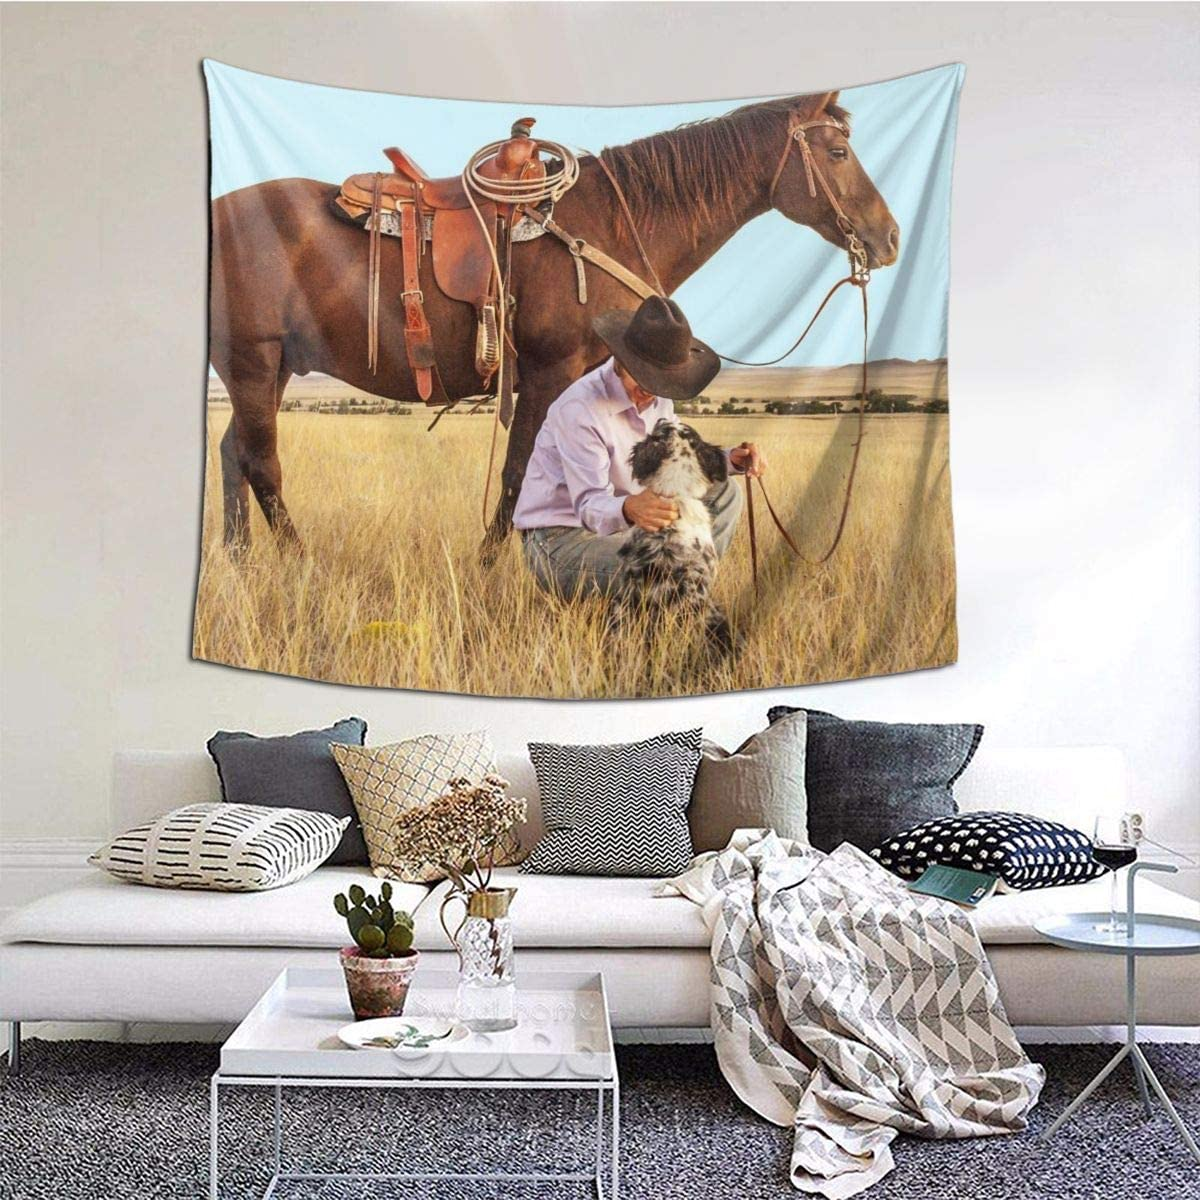 Amazon Com Ngff Cowboy Horse Dog Western Ranch Tapestry Wall Hanging Tapestries Home Decorations For Bedroom Living Room Dorm Party Decor Home Kitchen